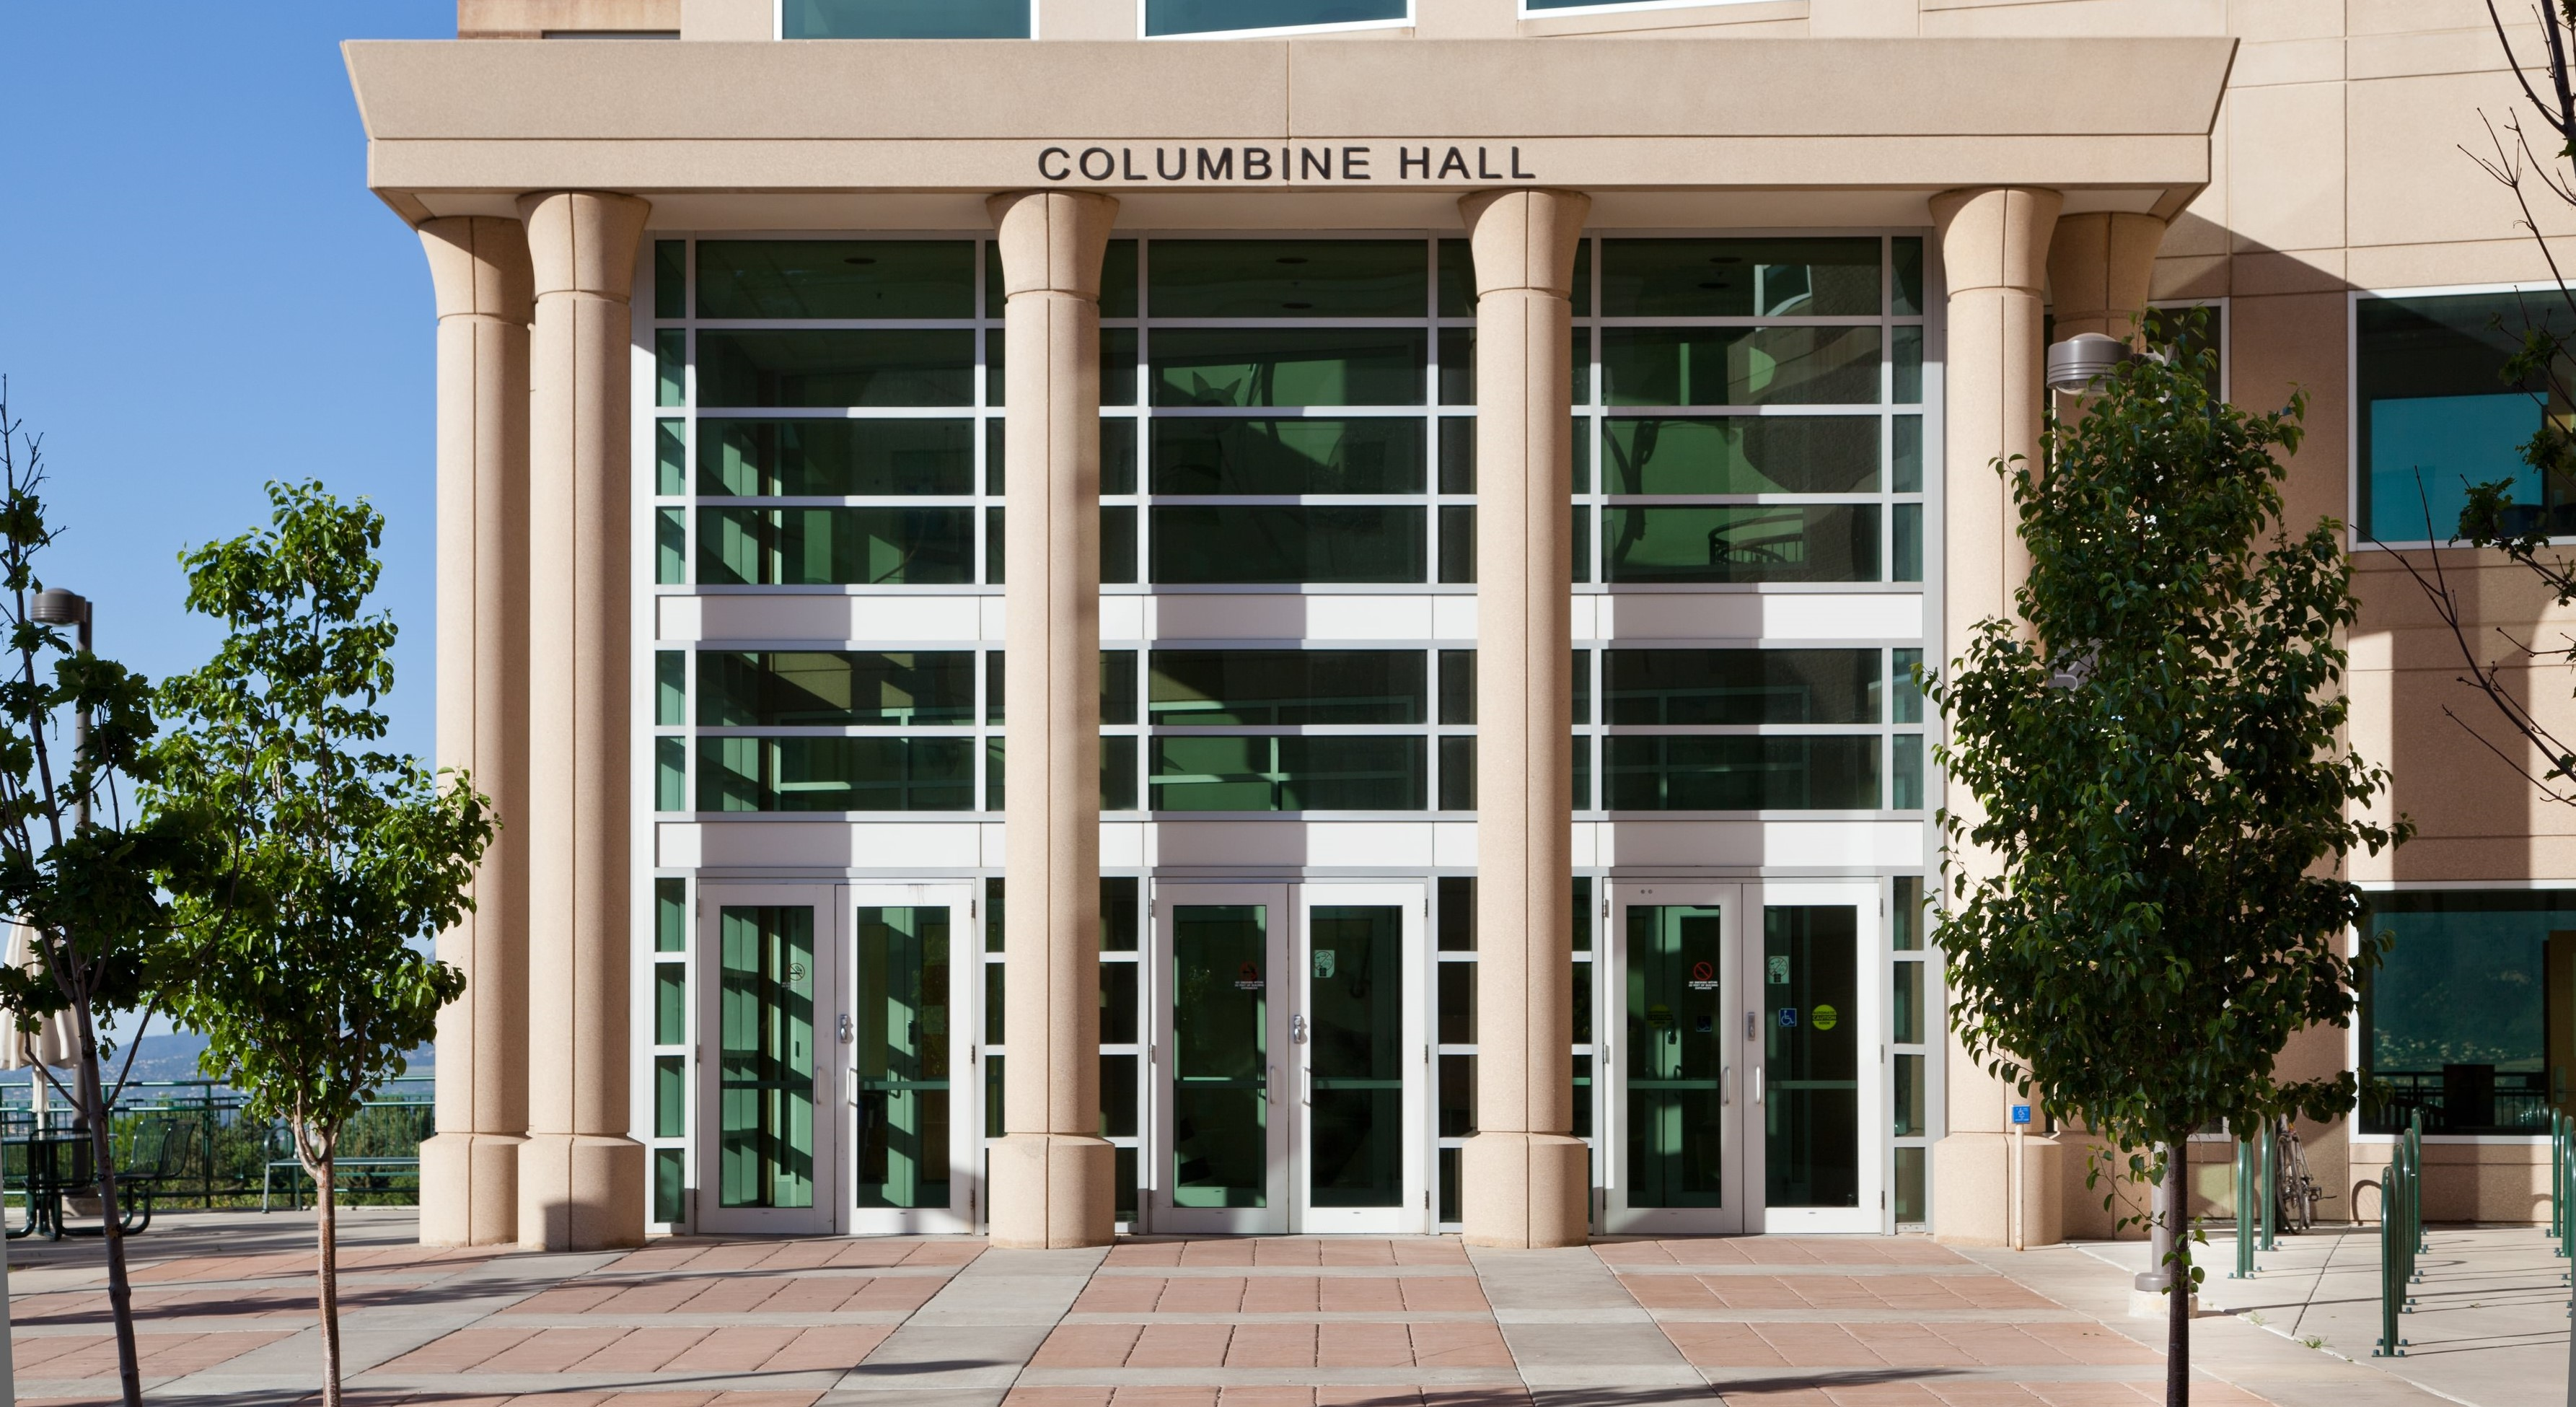 Picture of the exterior of Columbine Hall at UCCS.